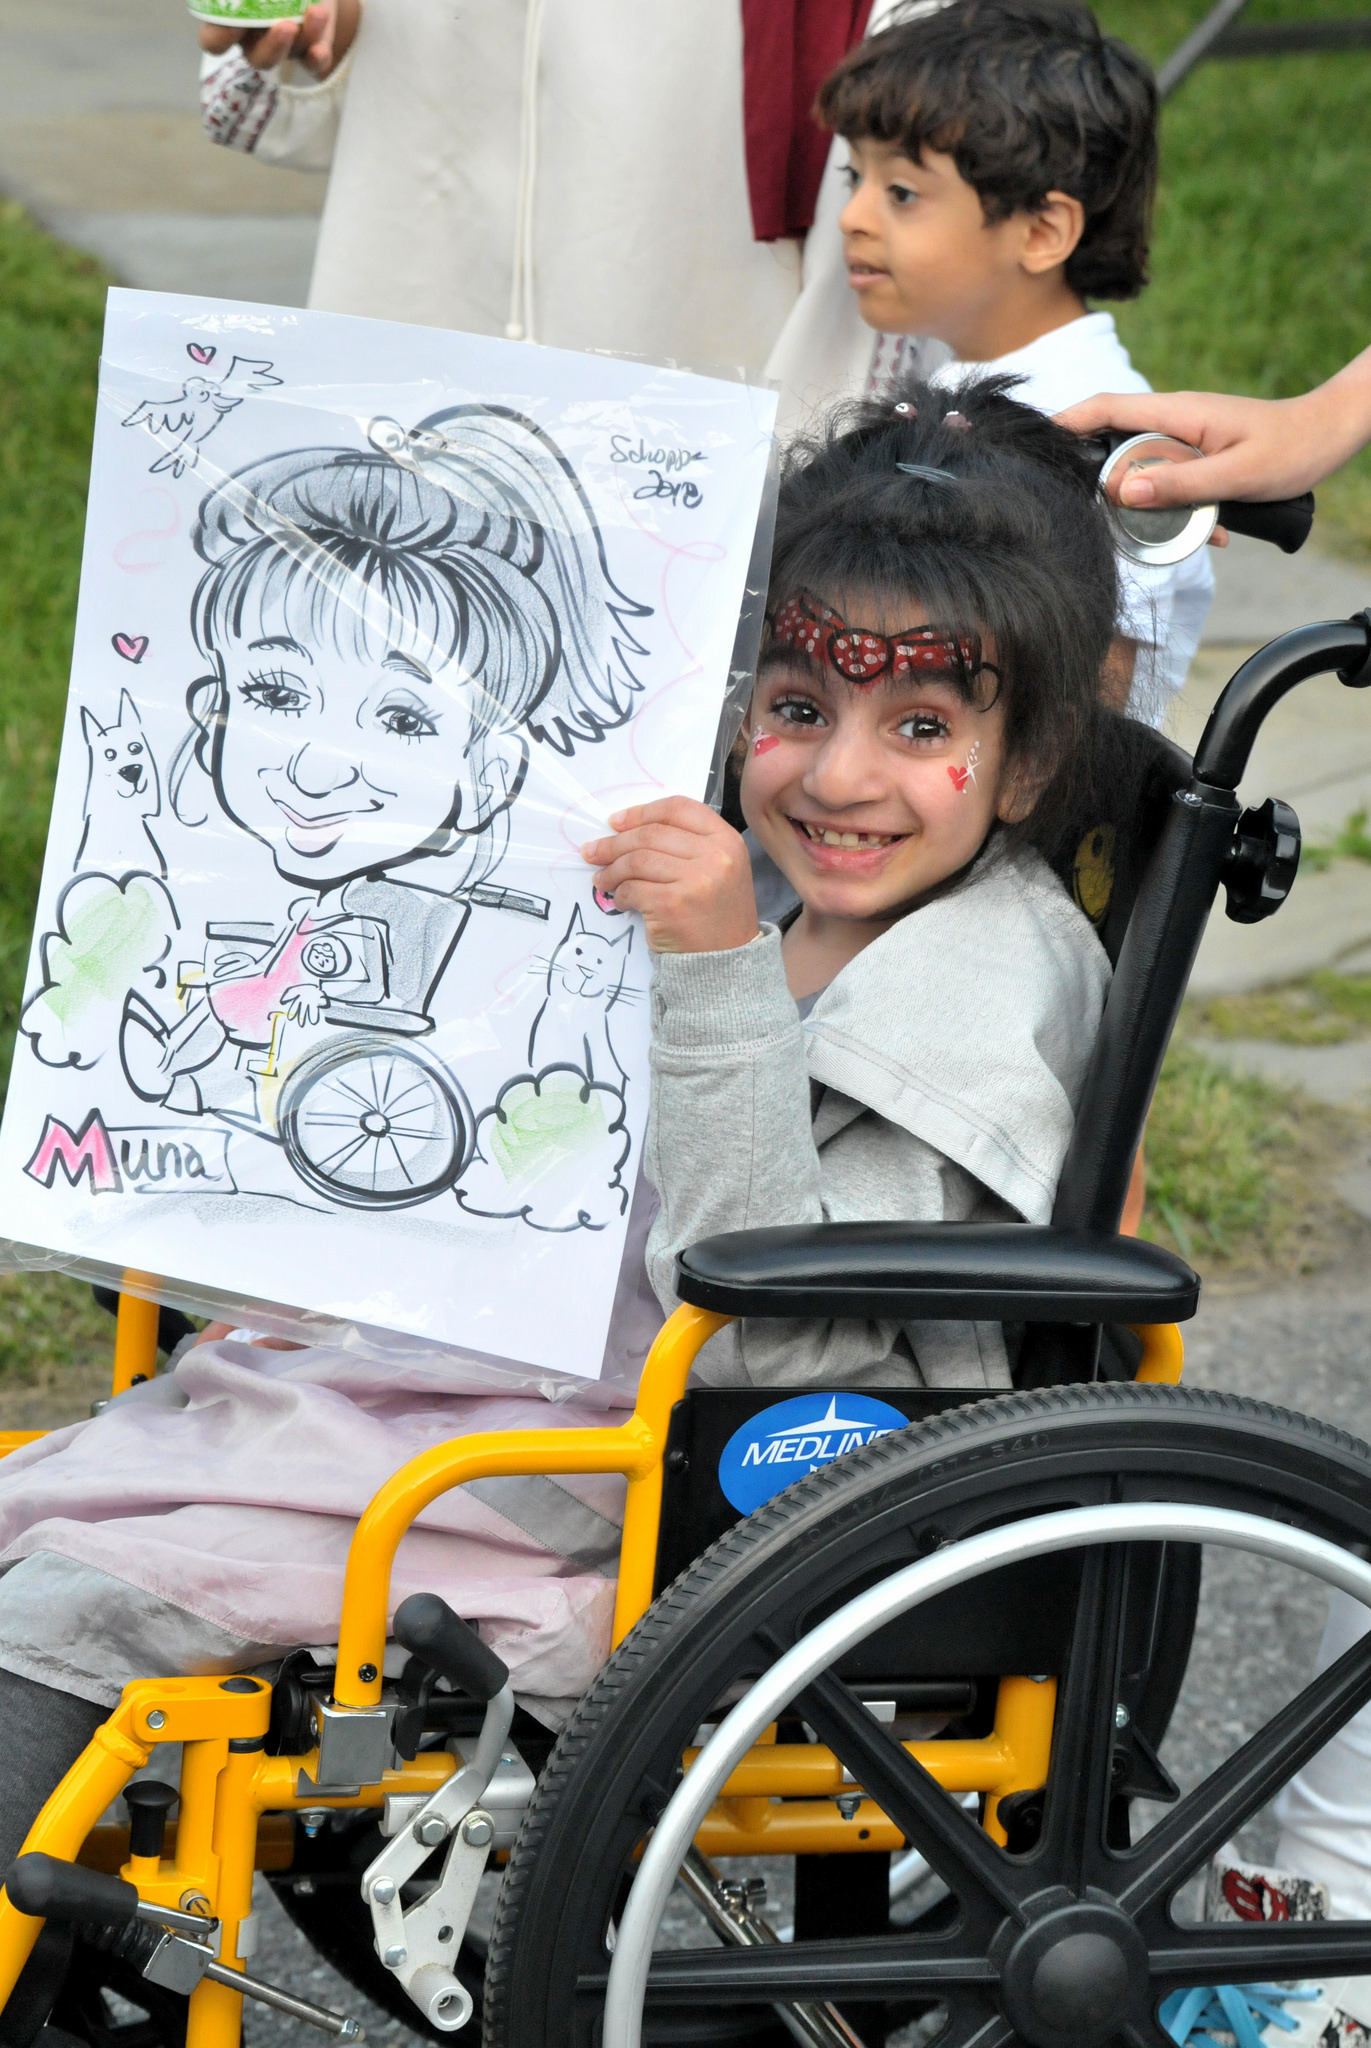 Muna displays her caricature from the carnival event